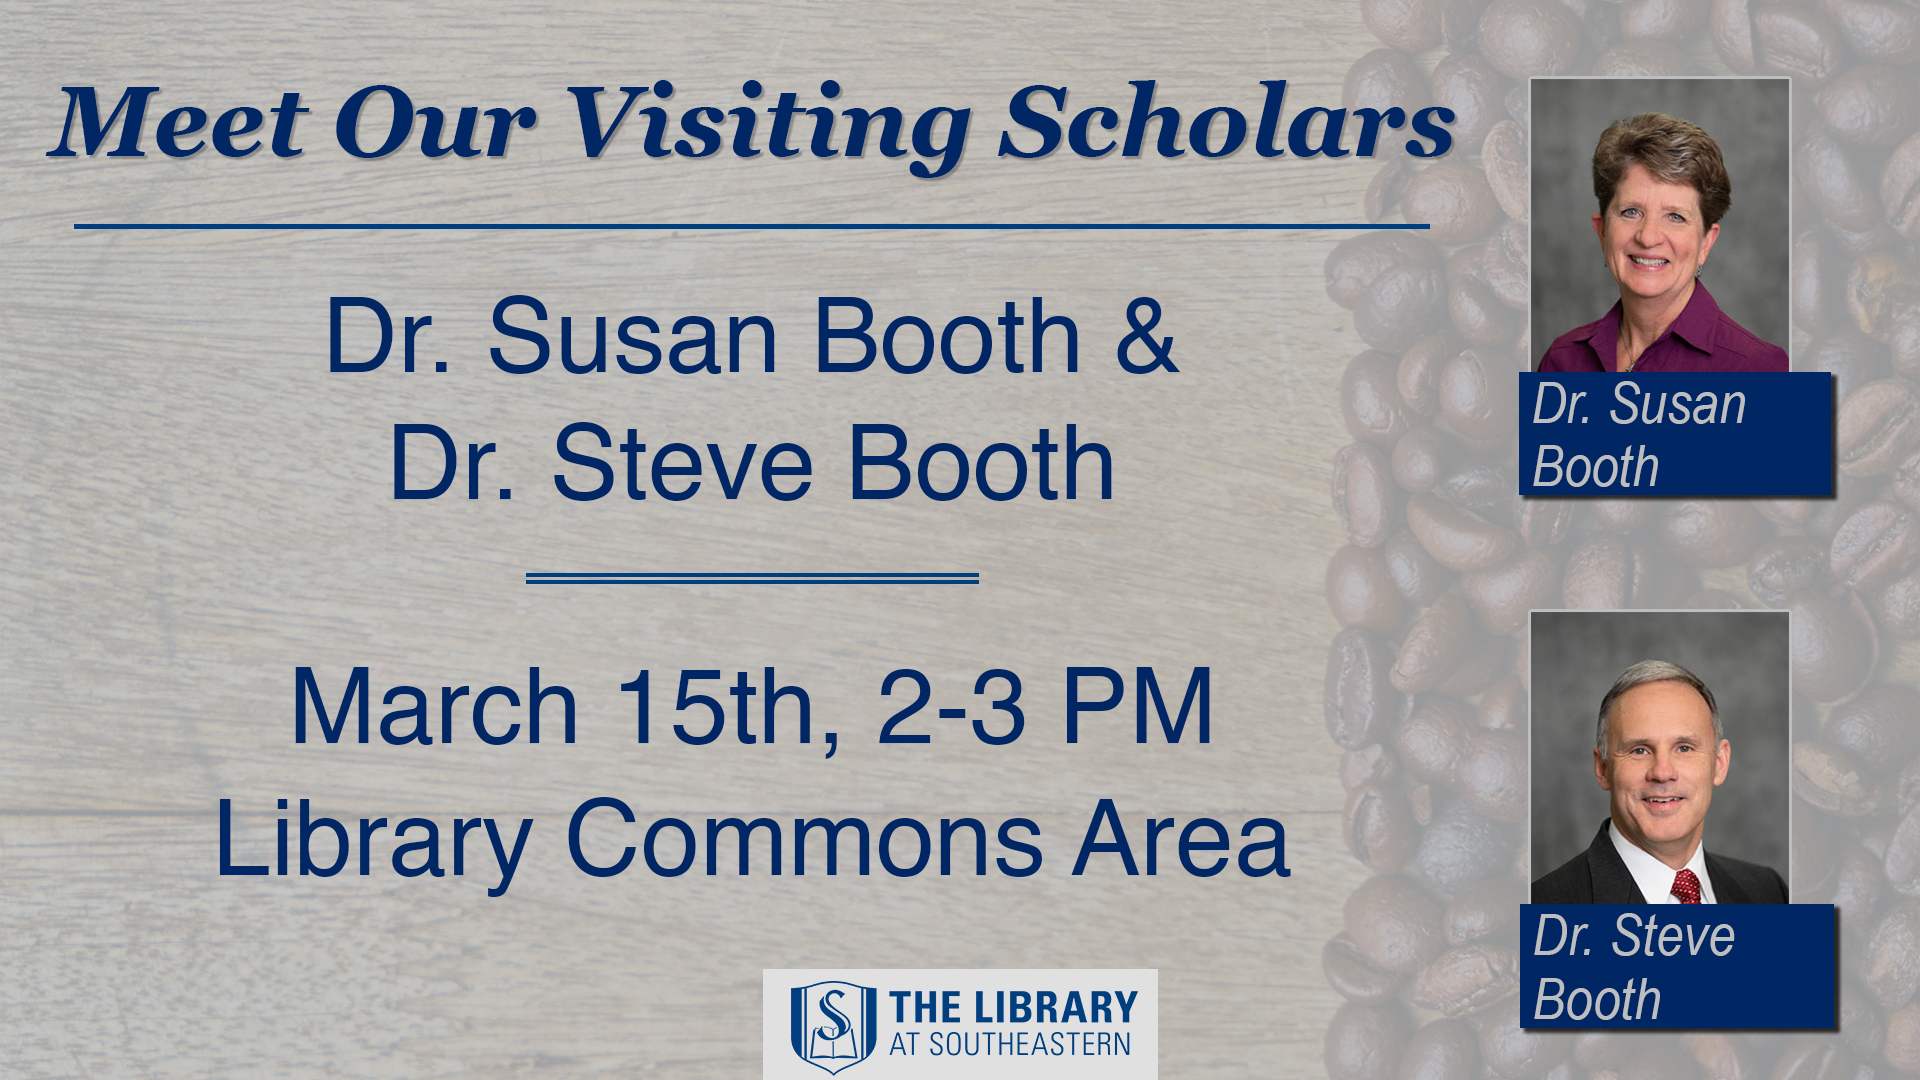 Meet Our Visiting Scholars